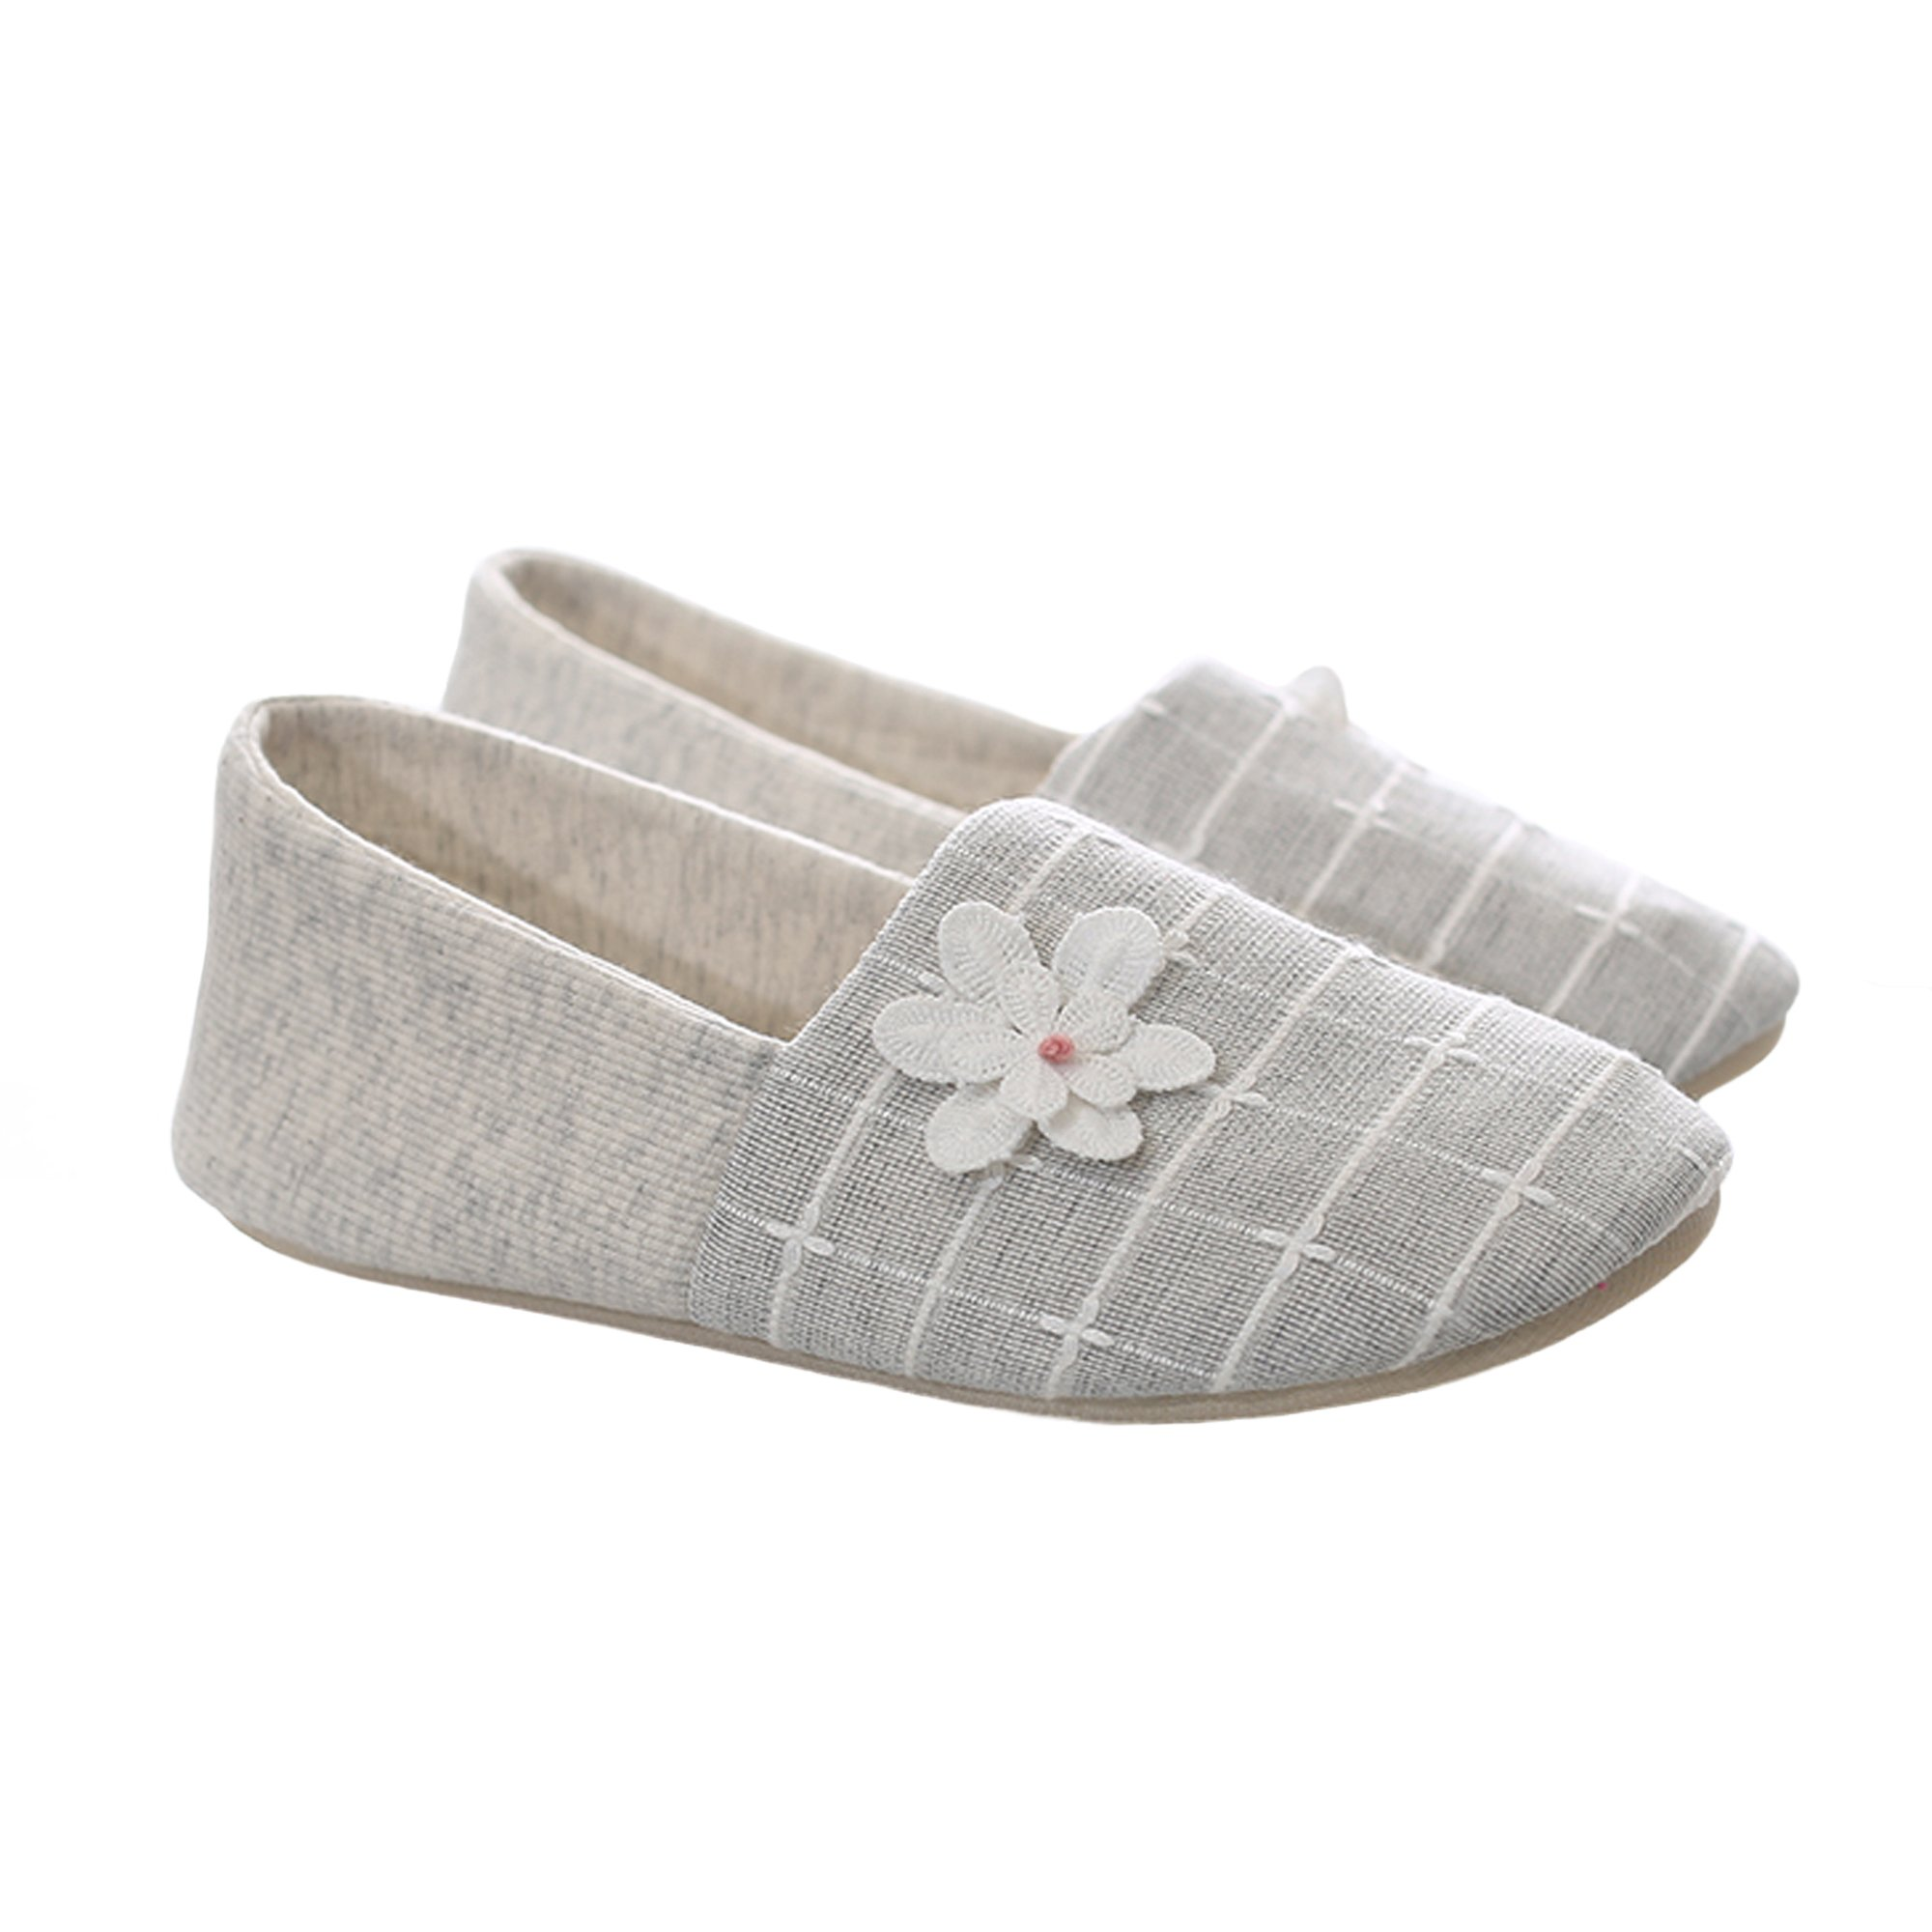 bestfur Beautiful Cozy Breathable Cotton Linen Soft Mute Sole House Slippers Shoes for Women